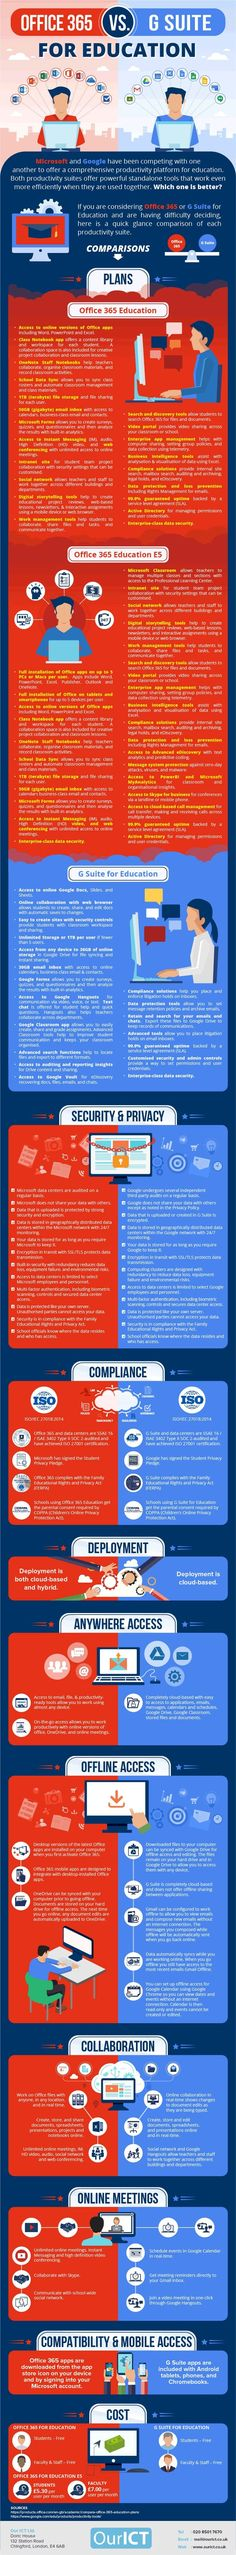 Office 365 Education vs G Suite for Education Infographic - https://elearninginfographics.com/office-365-education-vs-google-suite-infographic/